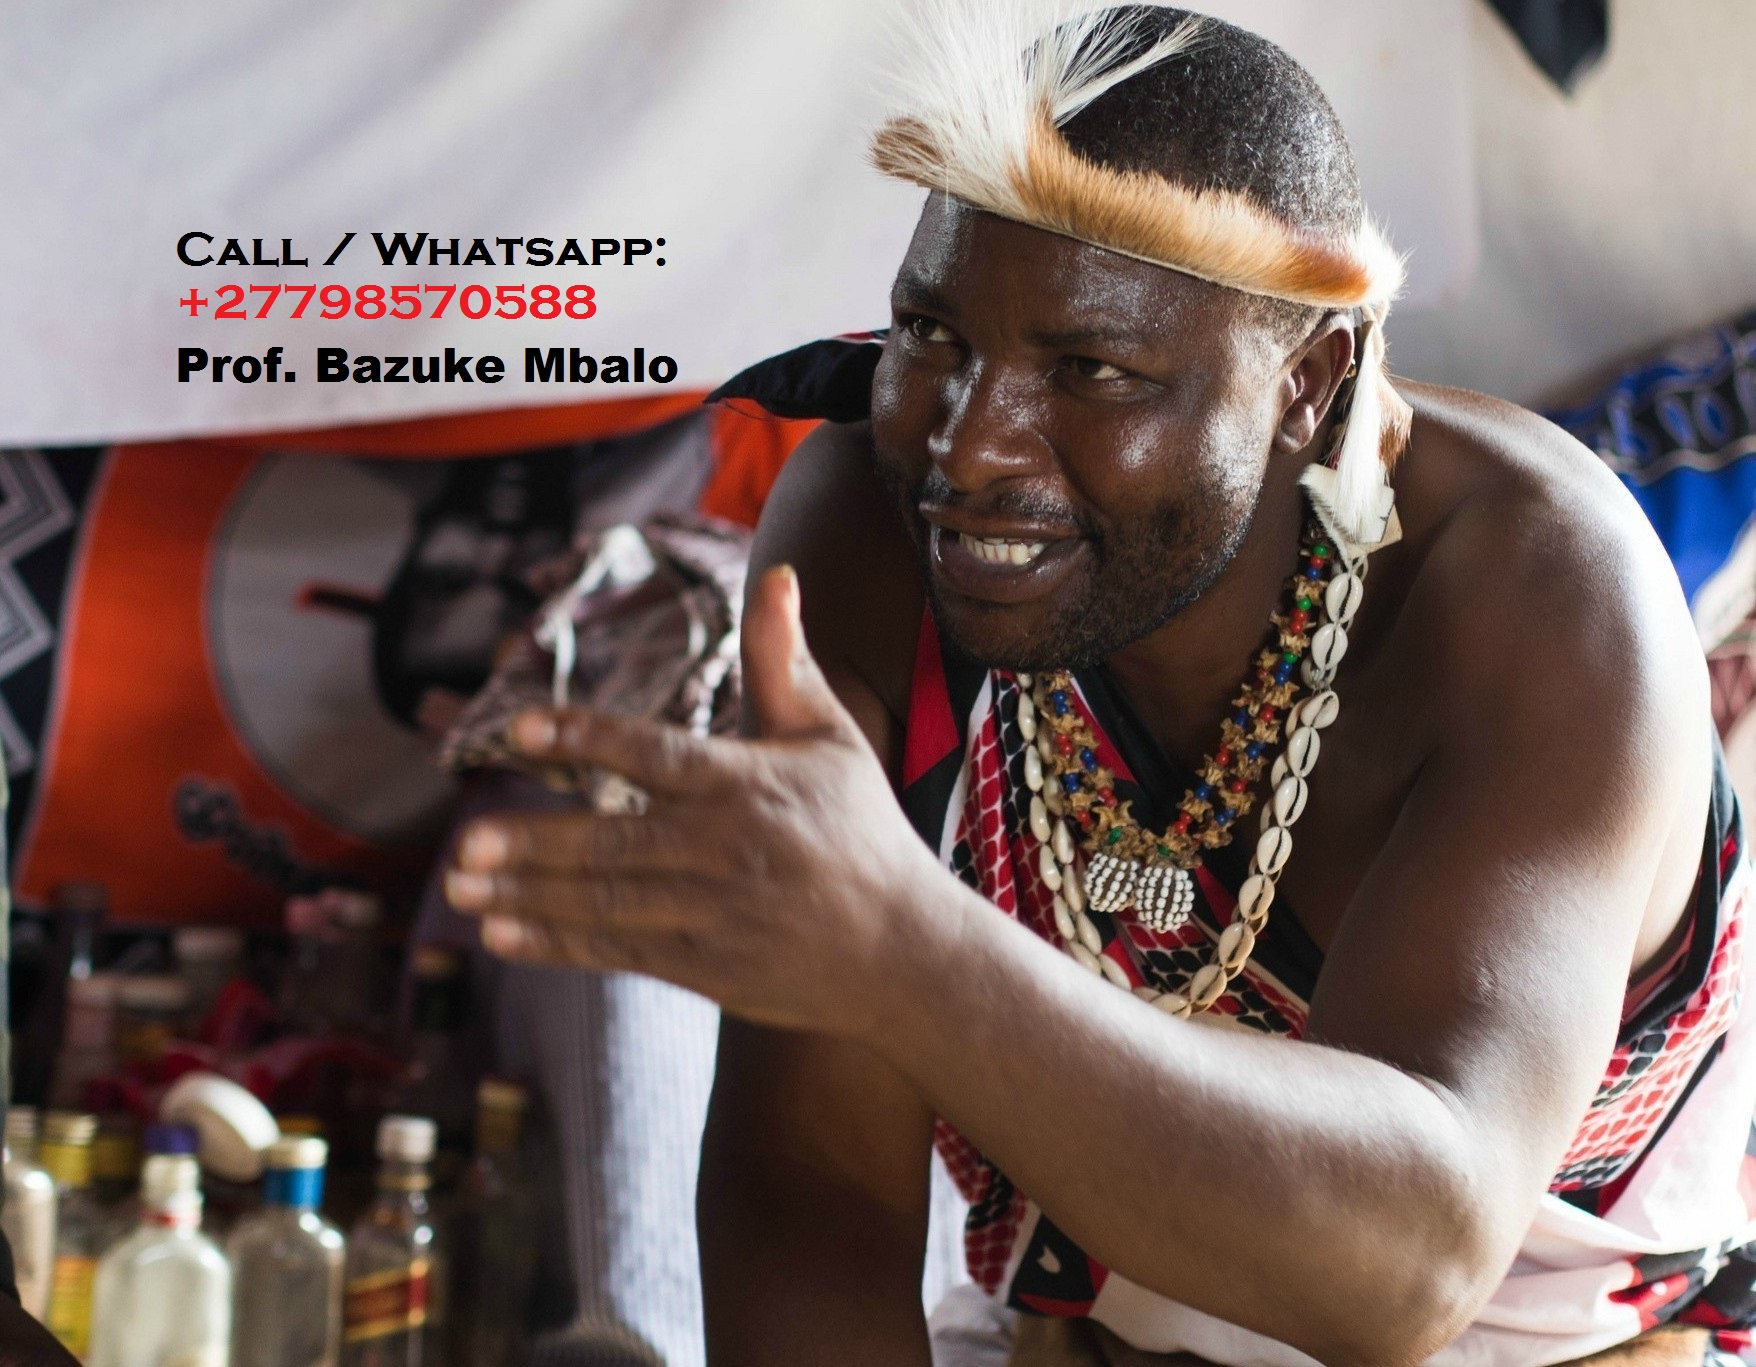 ''+27798570588'' Best Traditional Healer, Lost Love Spells, Sangoma, Psychic in Sandton, Krugersdorp, Johannesburg South Africa and Worldwide